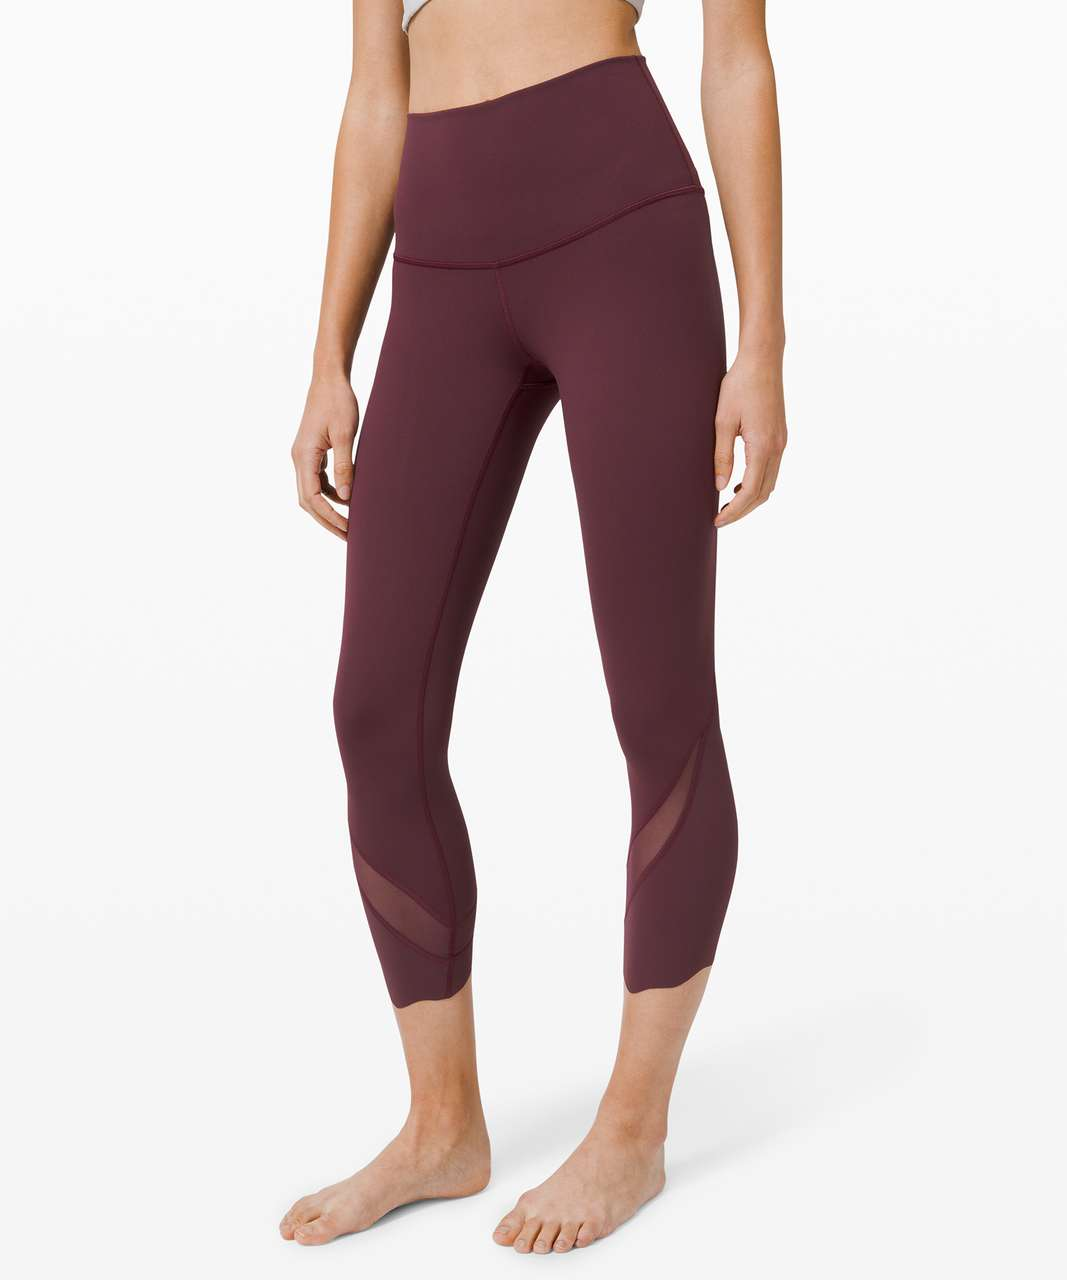 """Lululemon Wunder Under Crop High-Rise *Roll Down Scallop Full-On Luxtreme 23"""" - Cassis"""